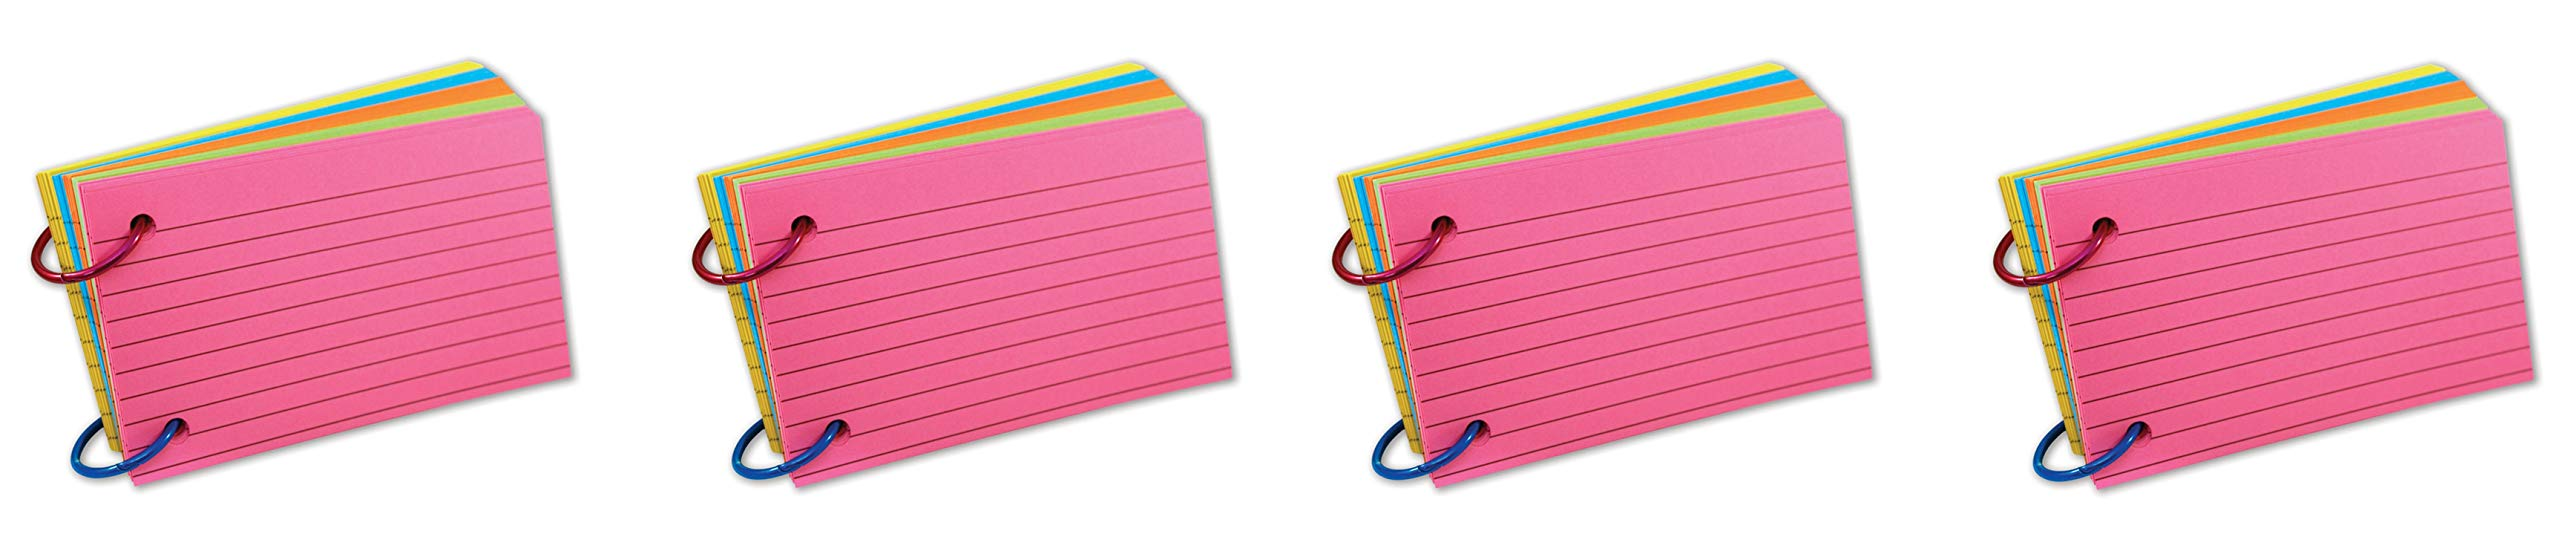 Top Notch Teacher Products TOP3674 Ring Notes, Lined, Assorted Bright Colors, 3'' x 5'', Pack of 75 (Fоur Paсk) by Top Notch Teacher Products